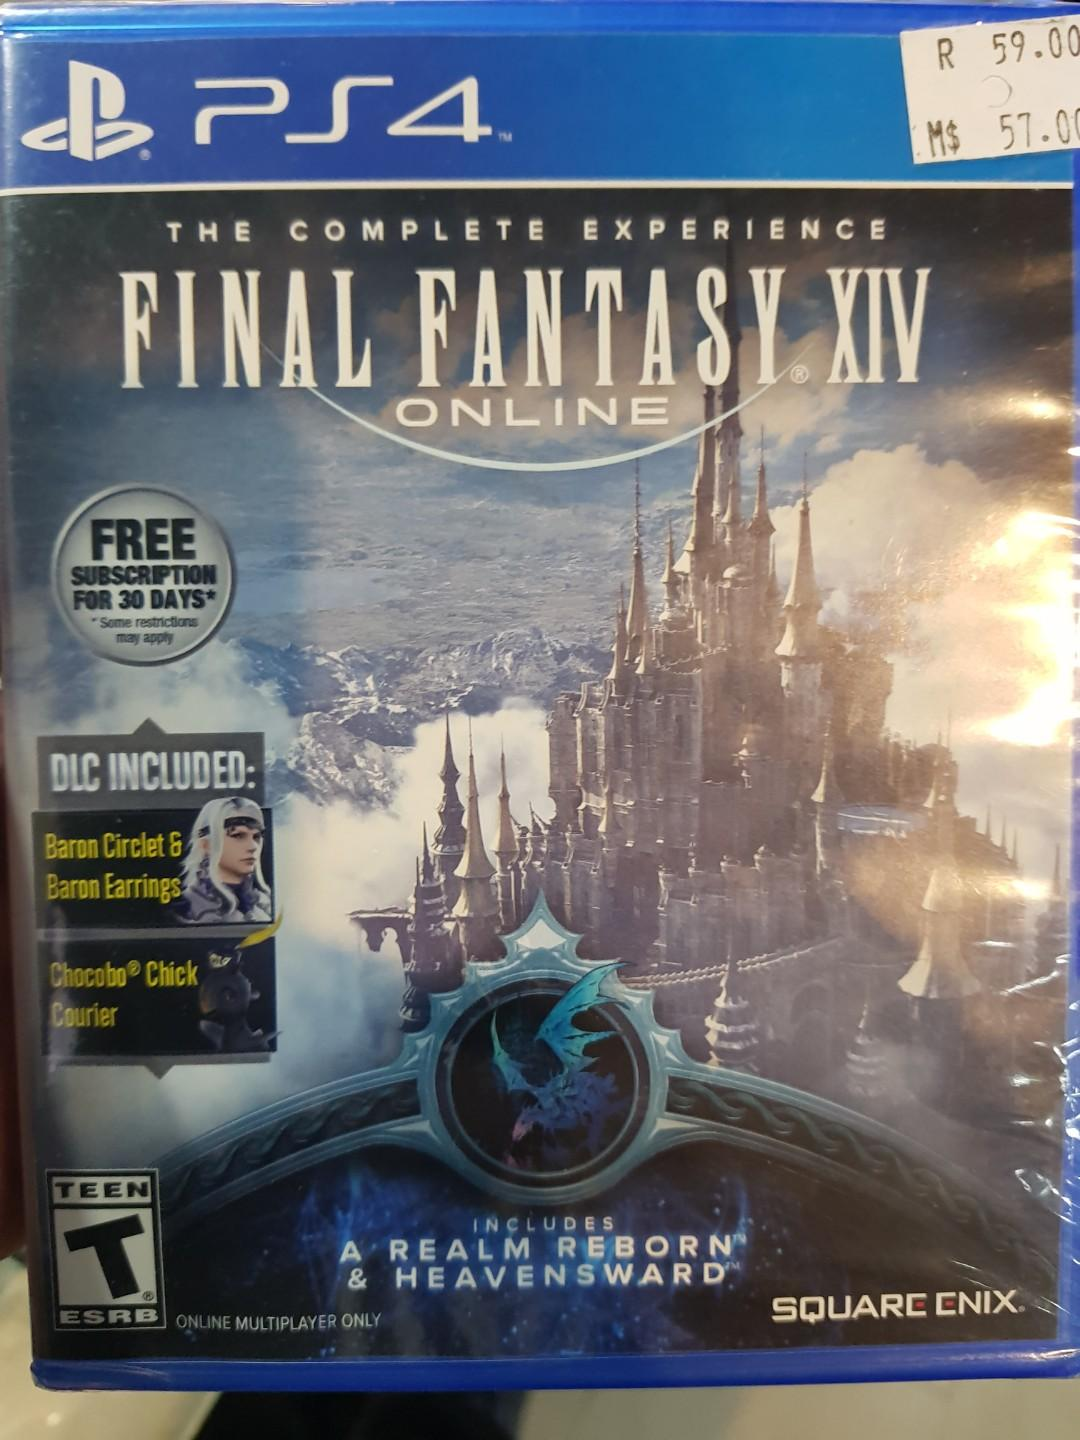 PS4 Final Fantasy XIV Online The complete Experience, Toys